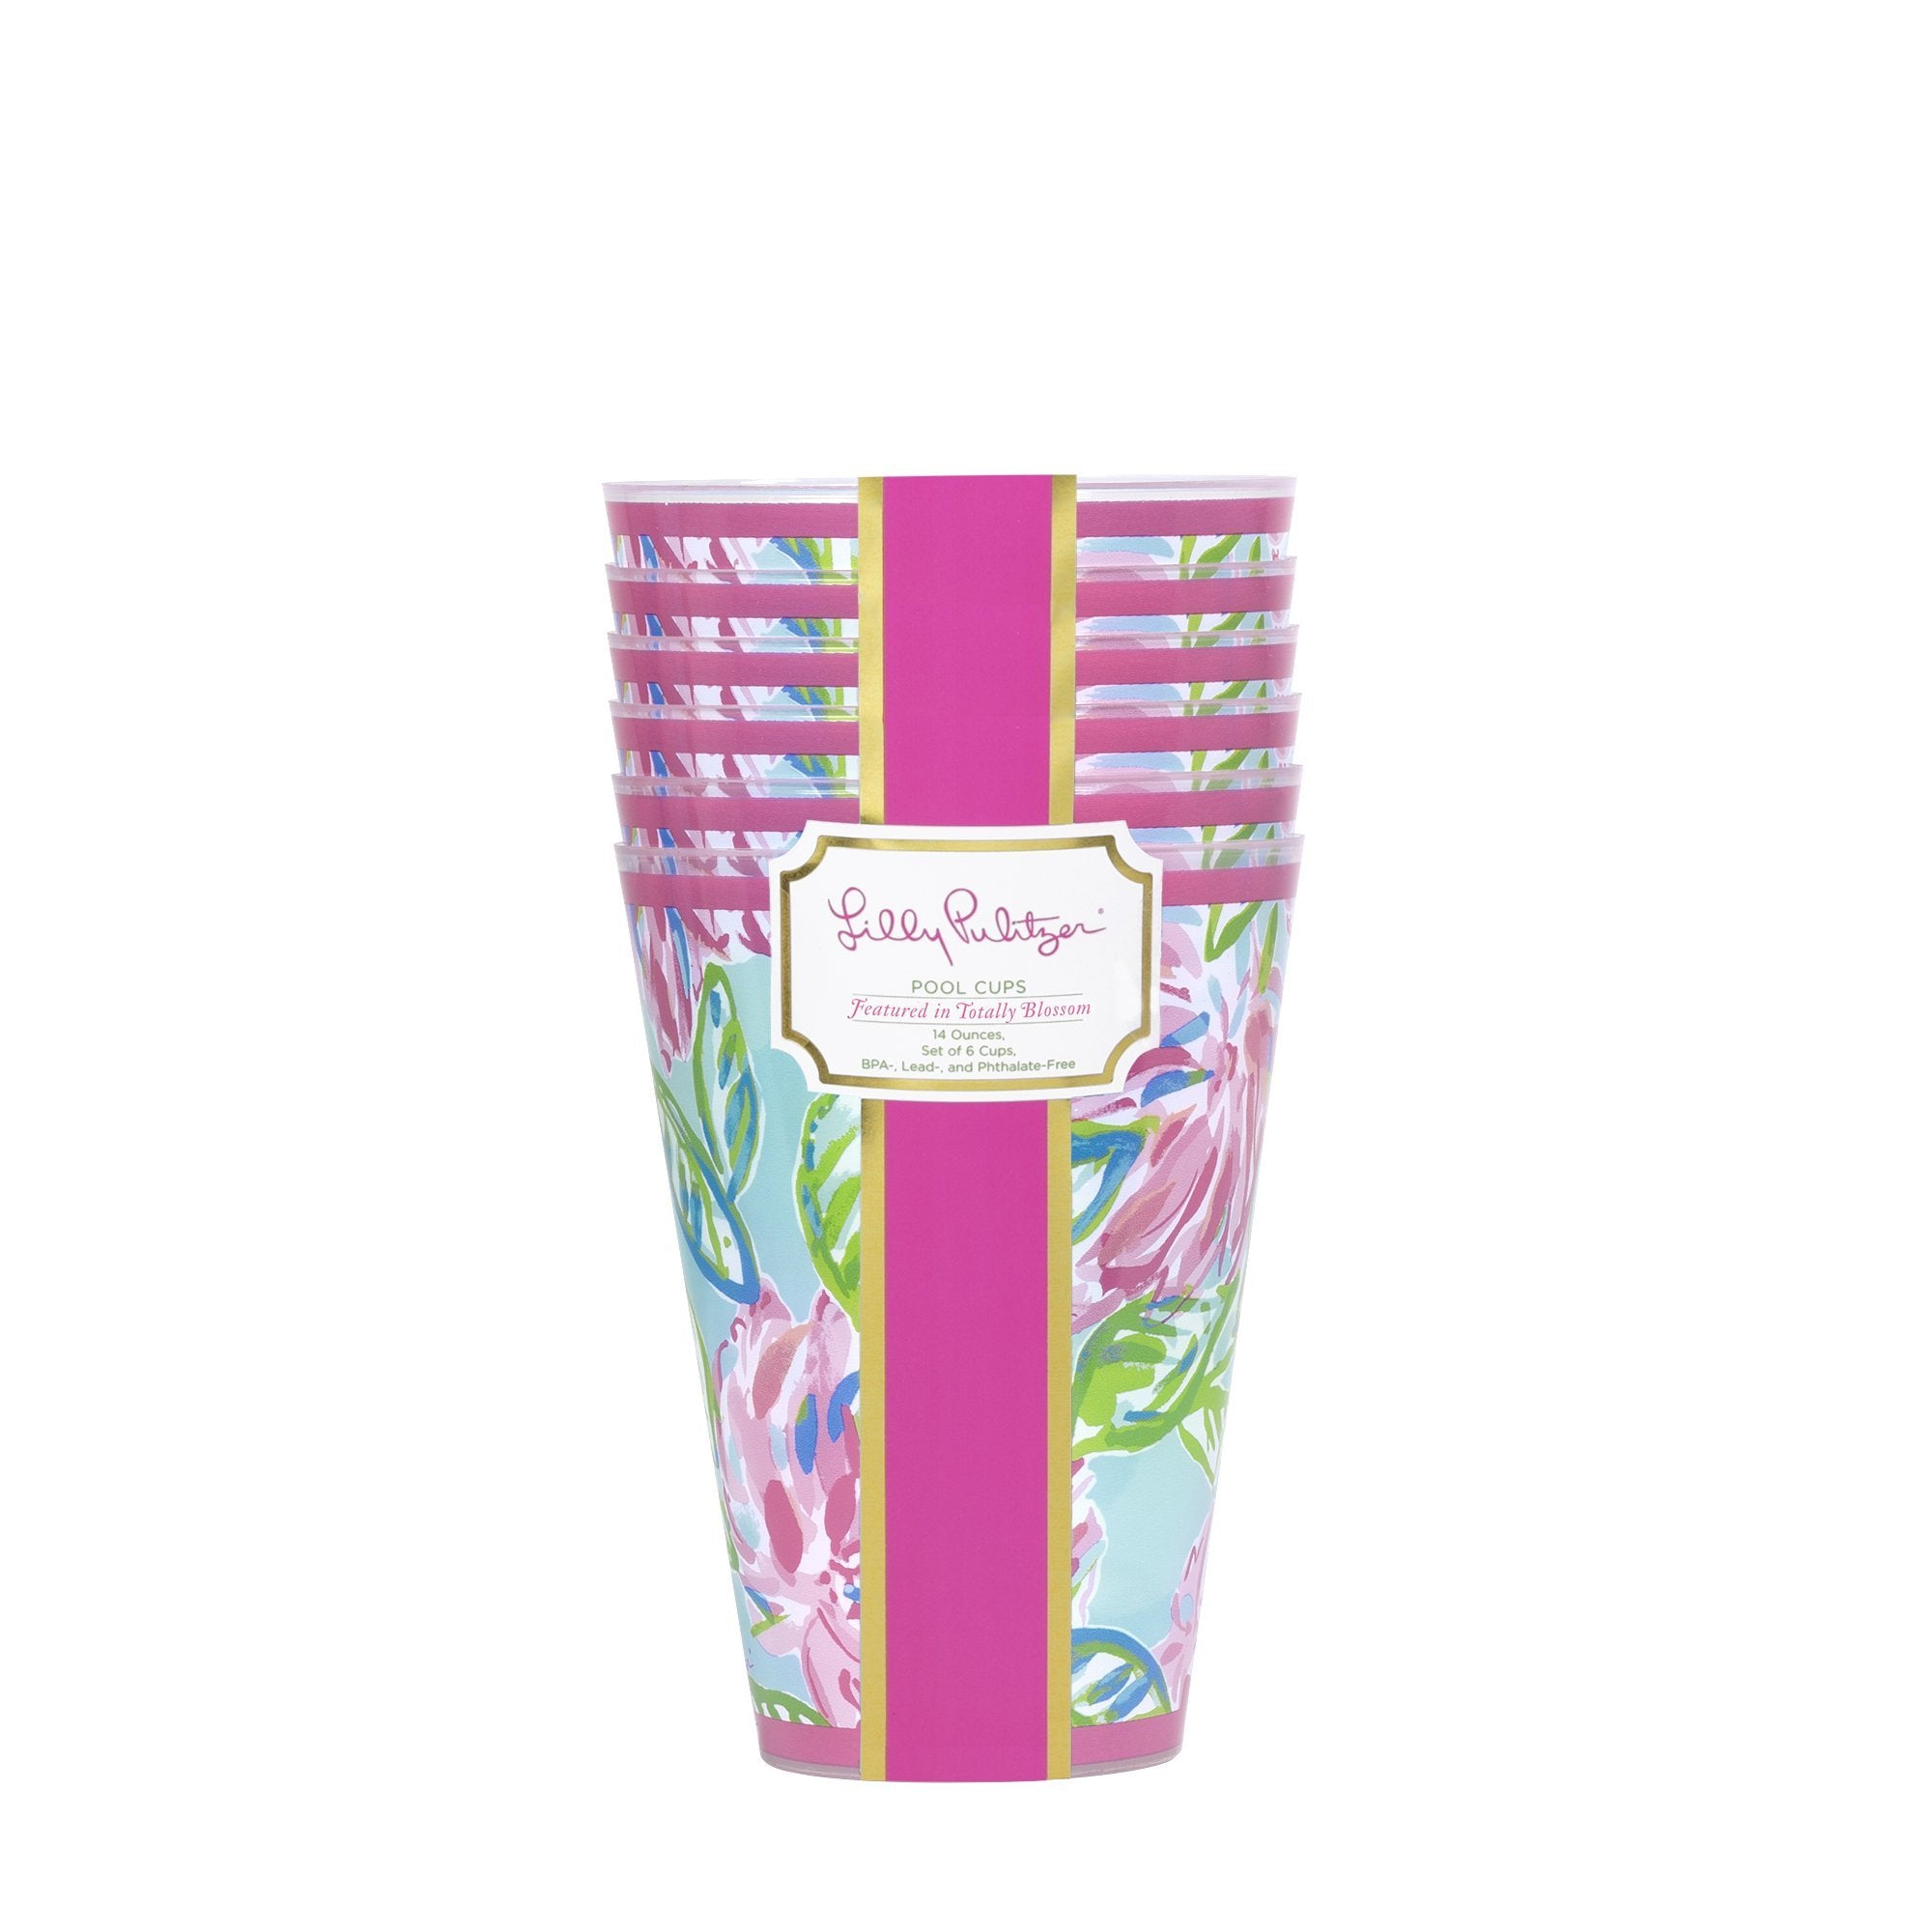 Lilly Pullitzer Pool Cups, Totally Blossom